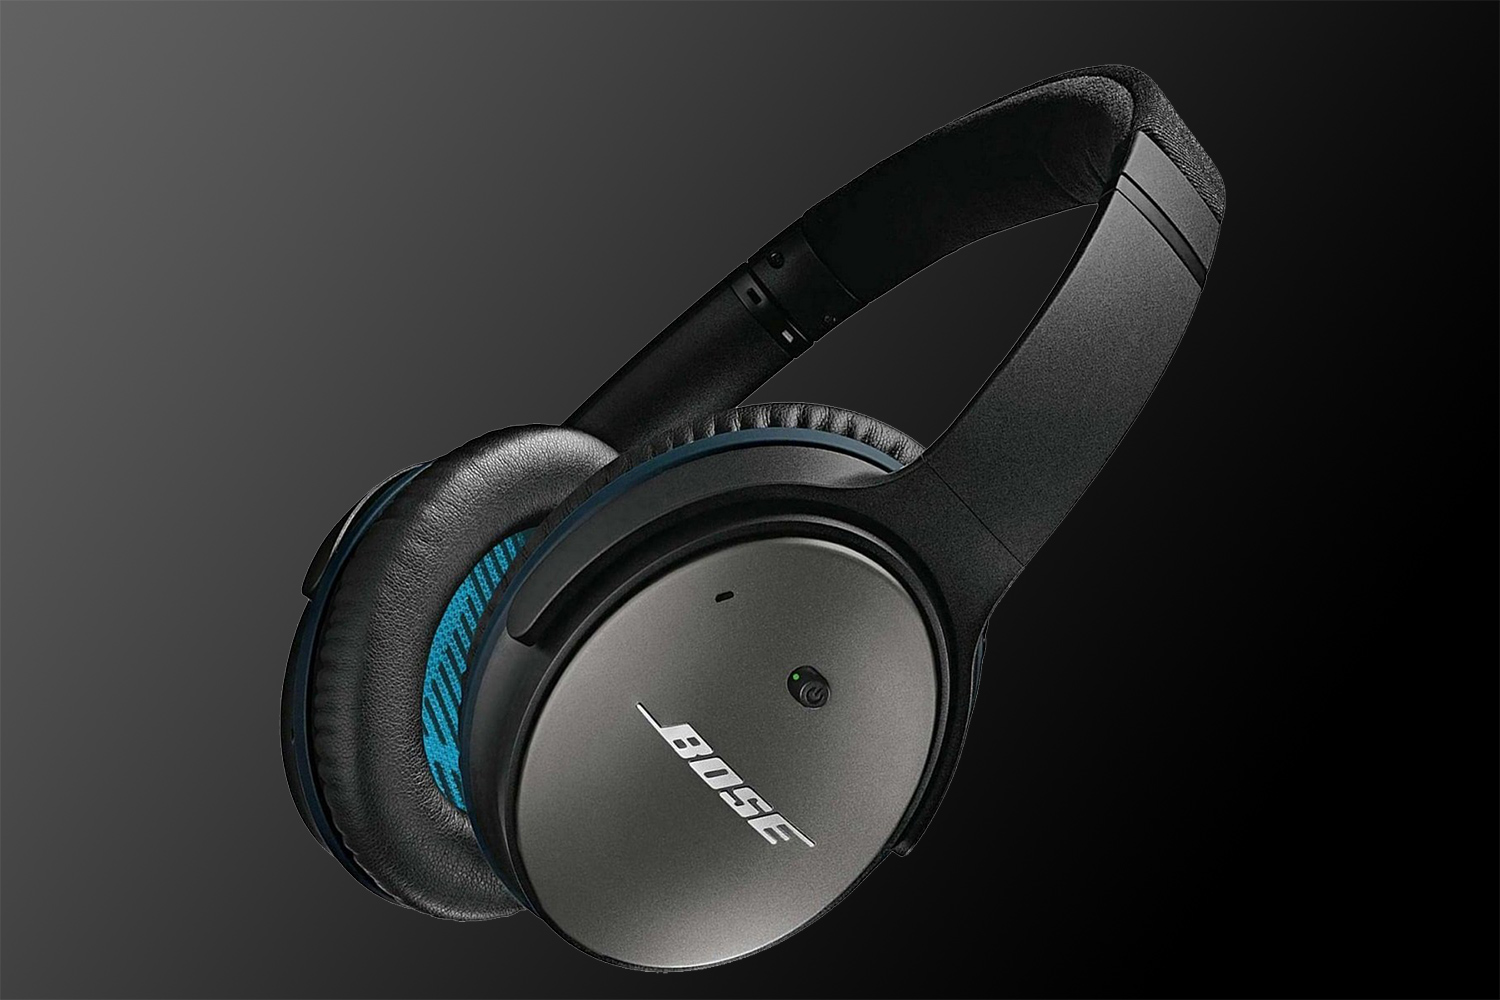 Bose S Best Wired Headphones Are Half Off On Amazon And We Ll Show You How To Make Them Wireless Bgr